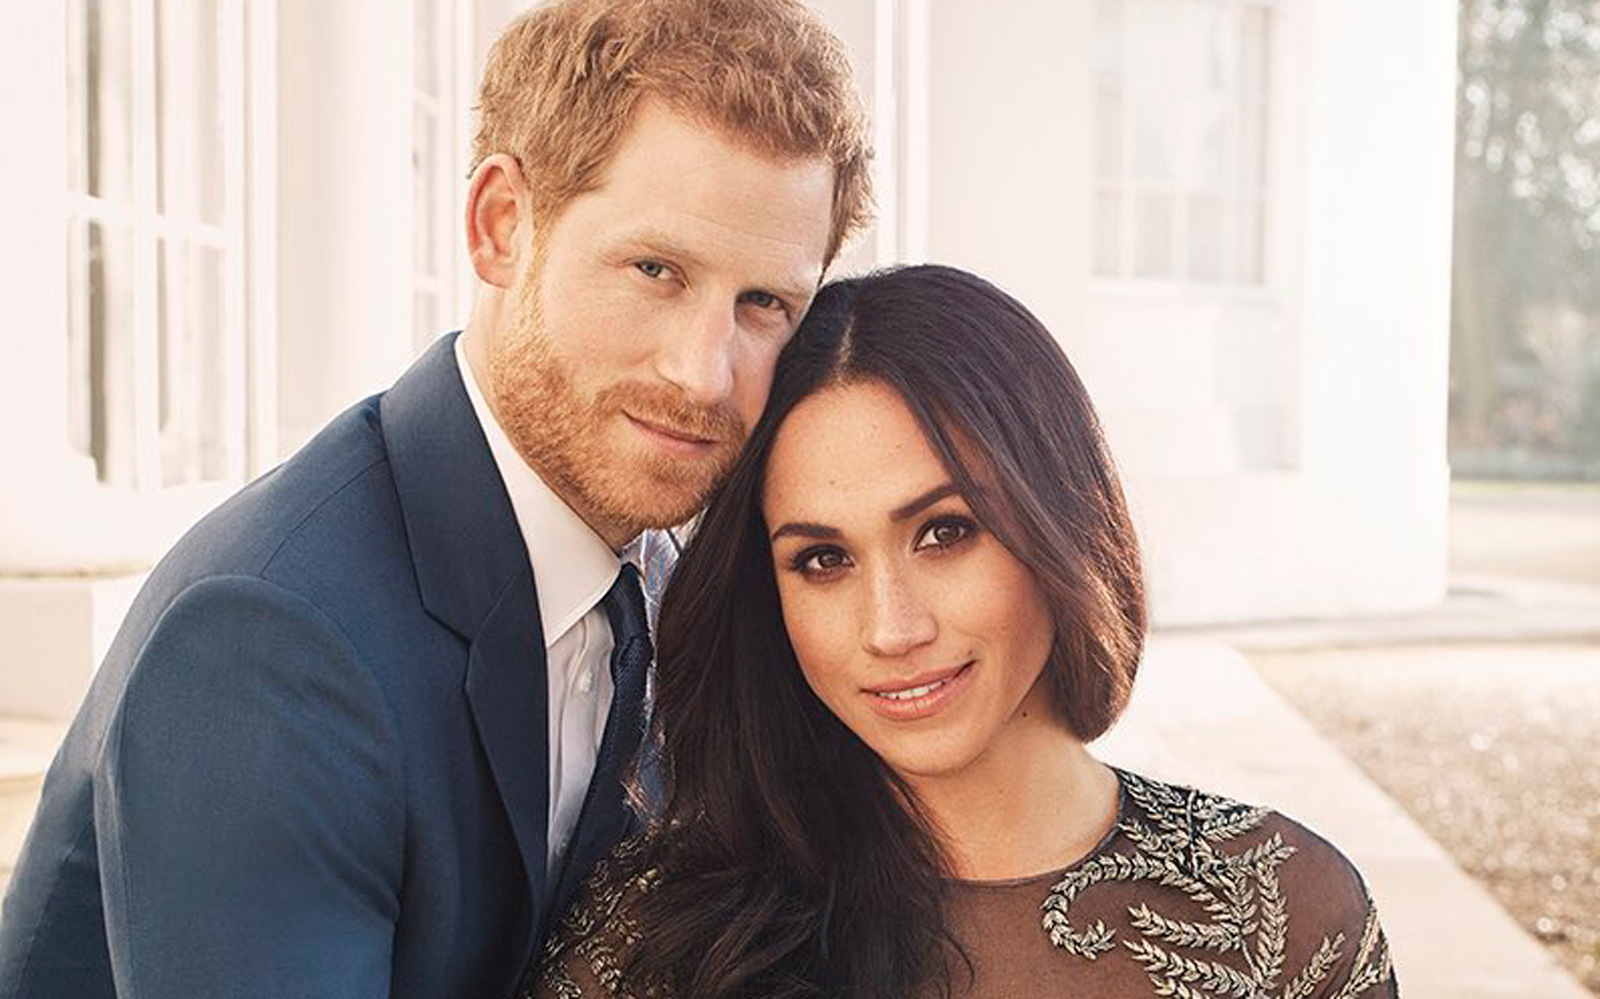 These British Tours Will Take You to London for the Royal Wedding